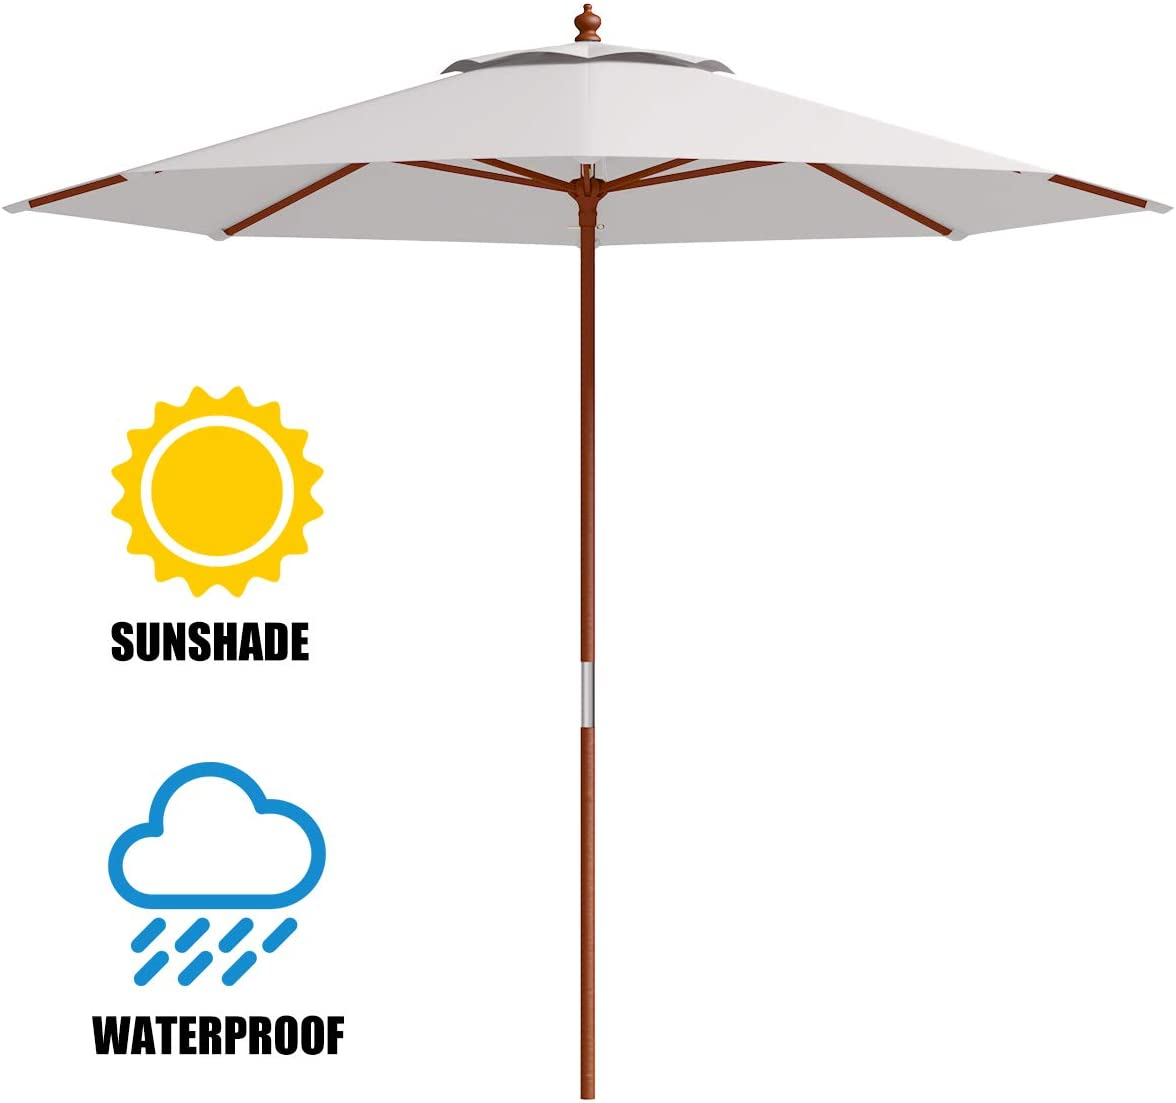 Tangkula 9 ft Patio Umbrella, Wooden 1.5 Inch Pole Height Adjustable with 8 Ribs Table Umbrella, Outdoor Garden Lawn Deck Market Caf Sunshade